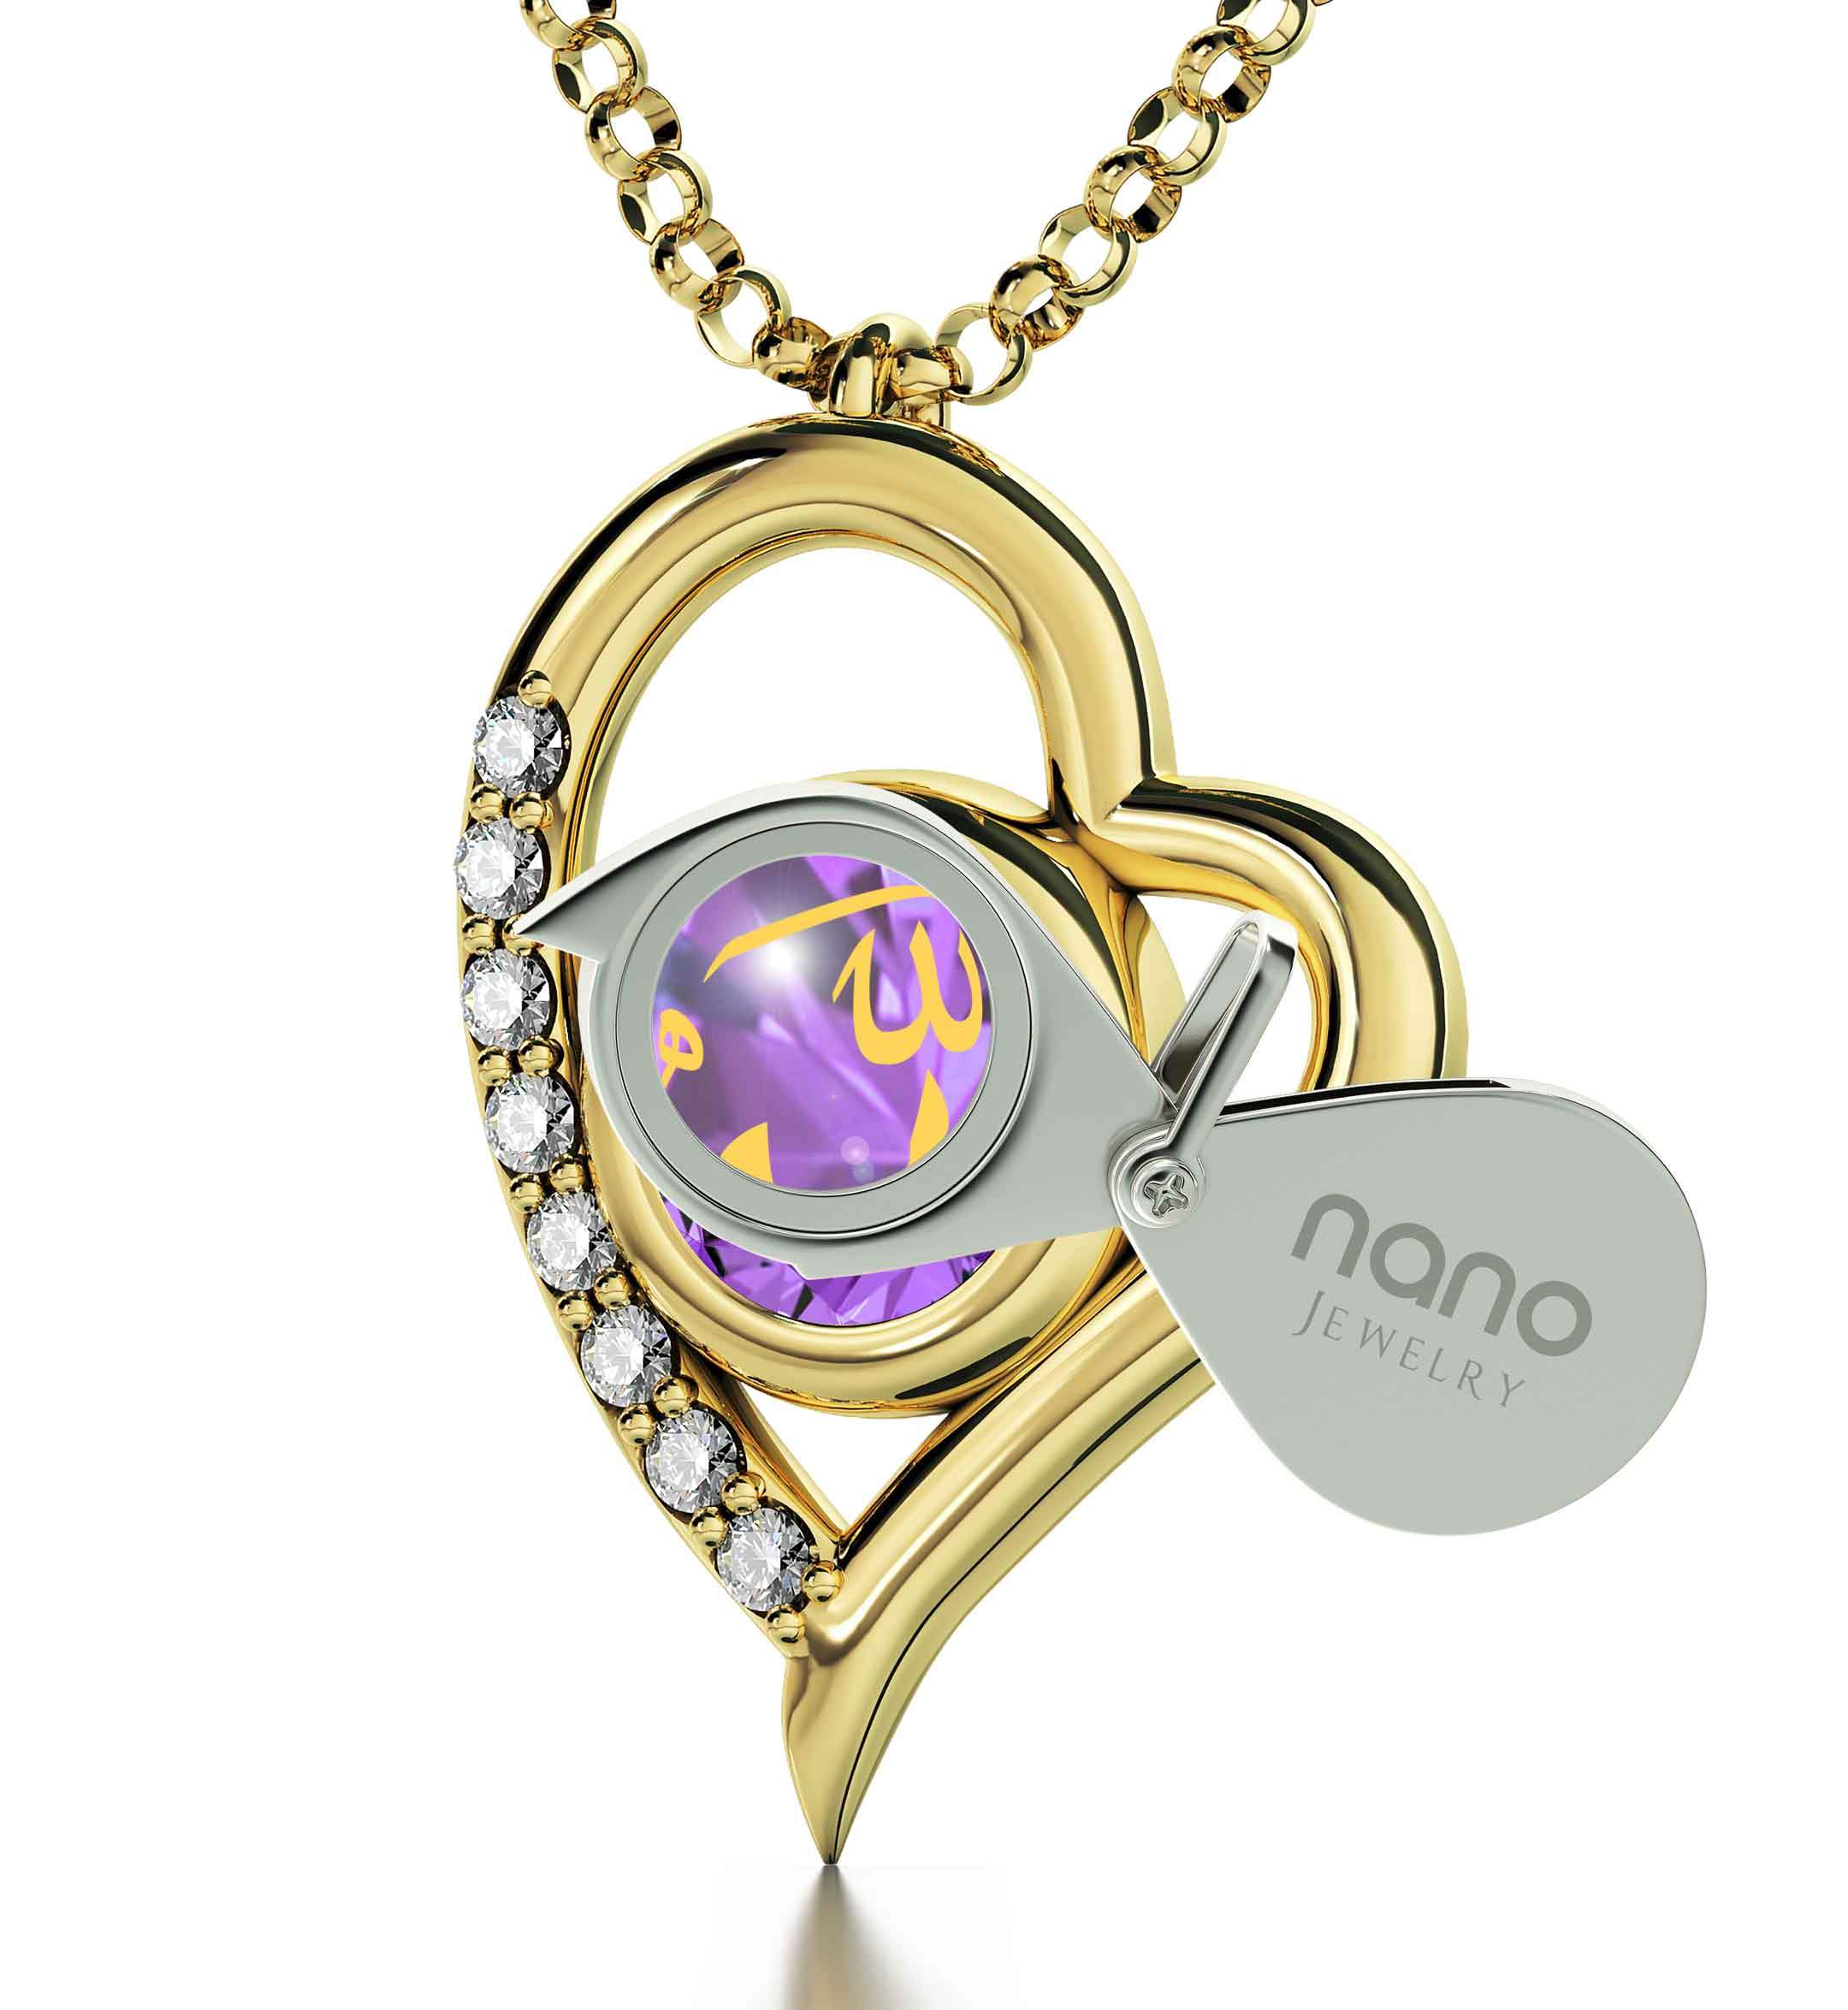 Allah Pendant Necklace: Allah imprinted in Pure Gold - Heart with Diamonds - 14k Gold - Nano Jewelry